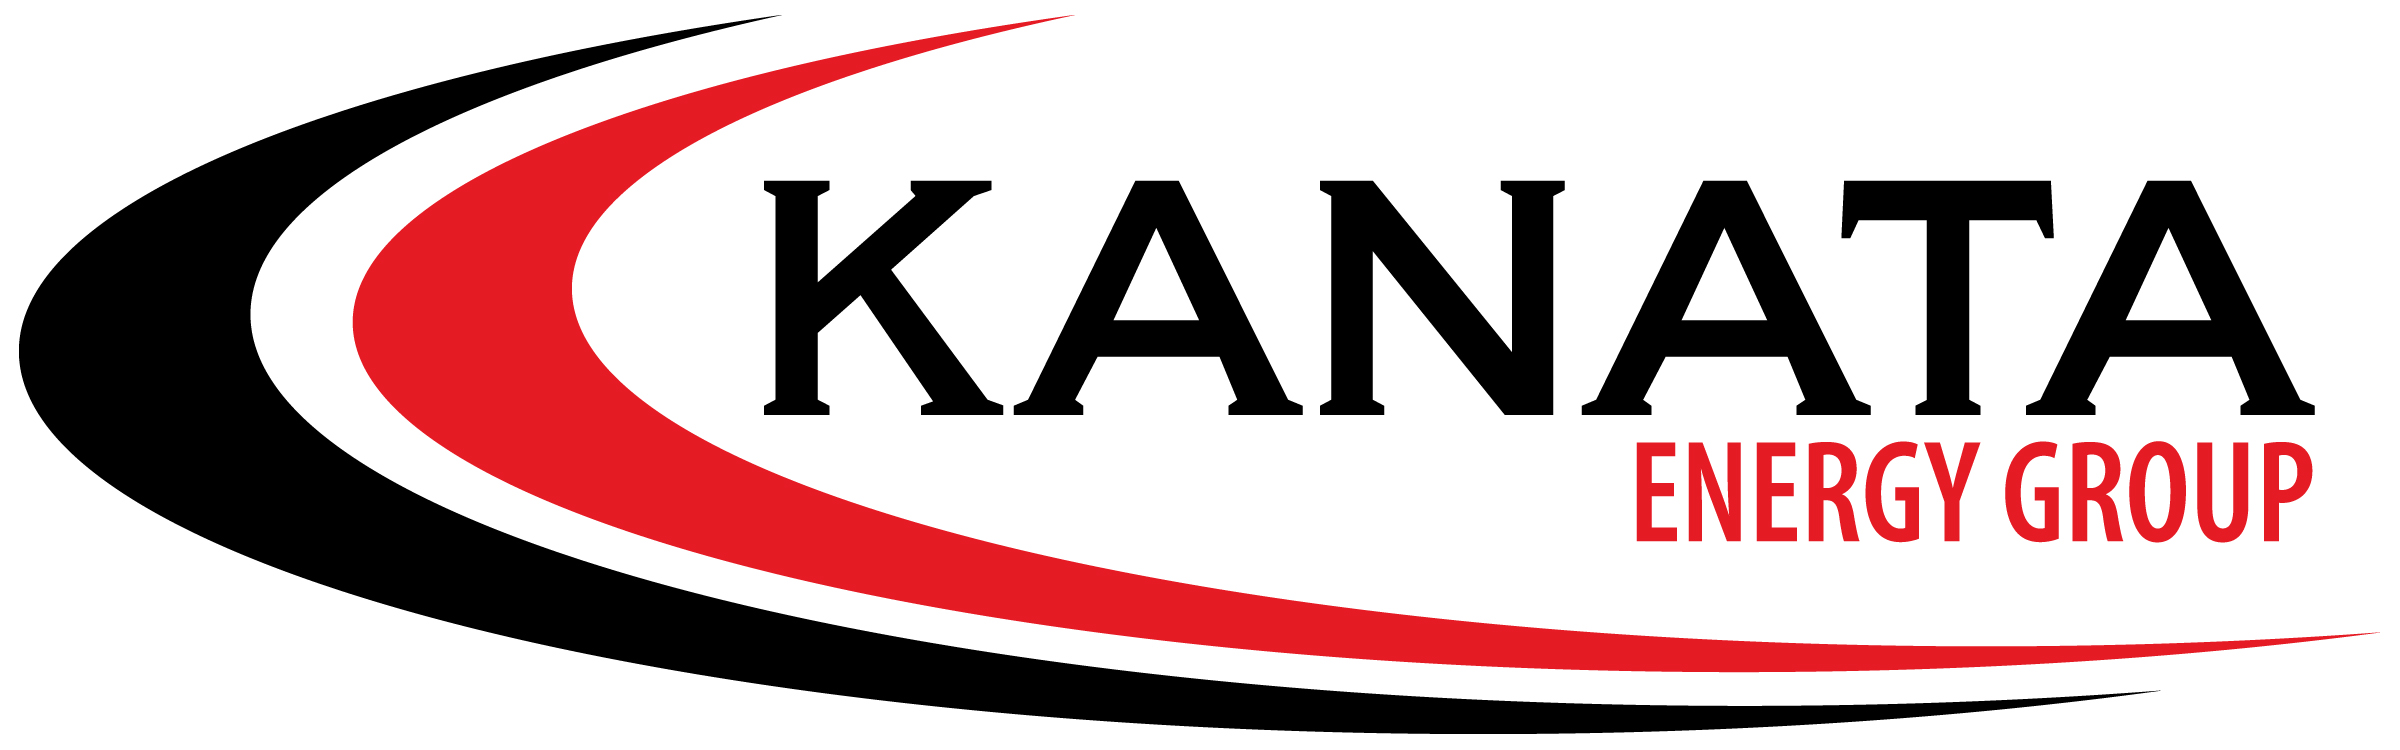 KANATA Energy Group Ltd. Announces New Partnership With  TAQA North Ltd. – Expansion of Valhalla Facility